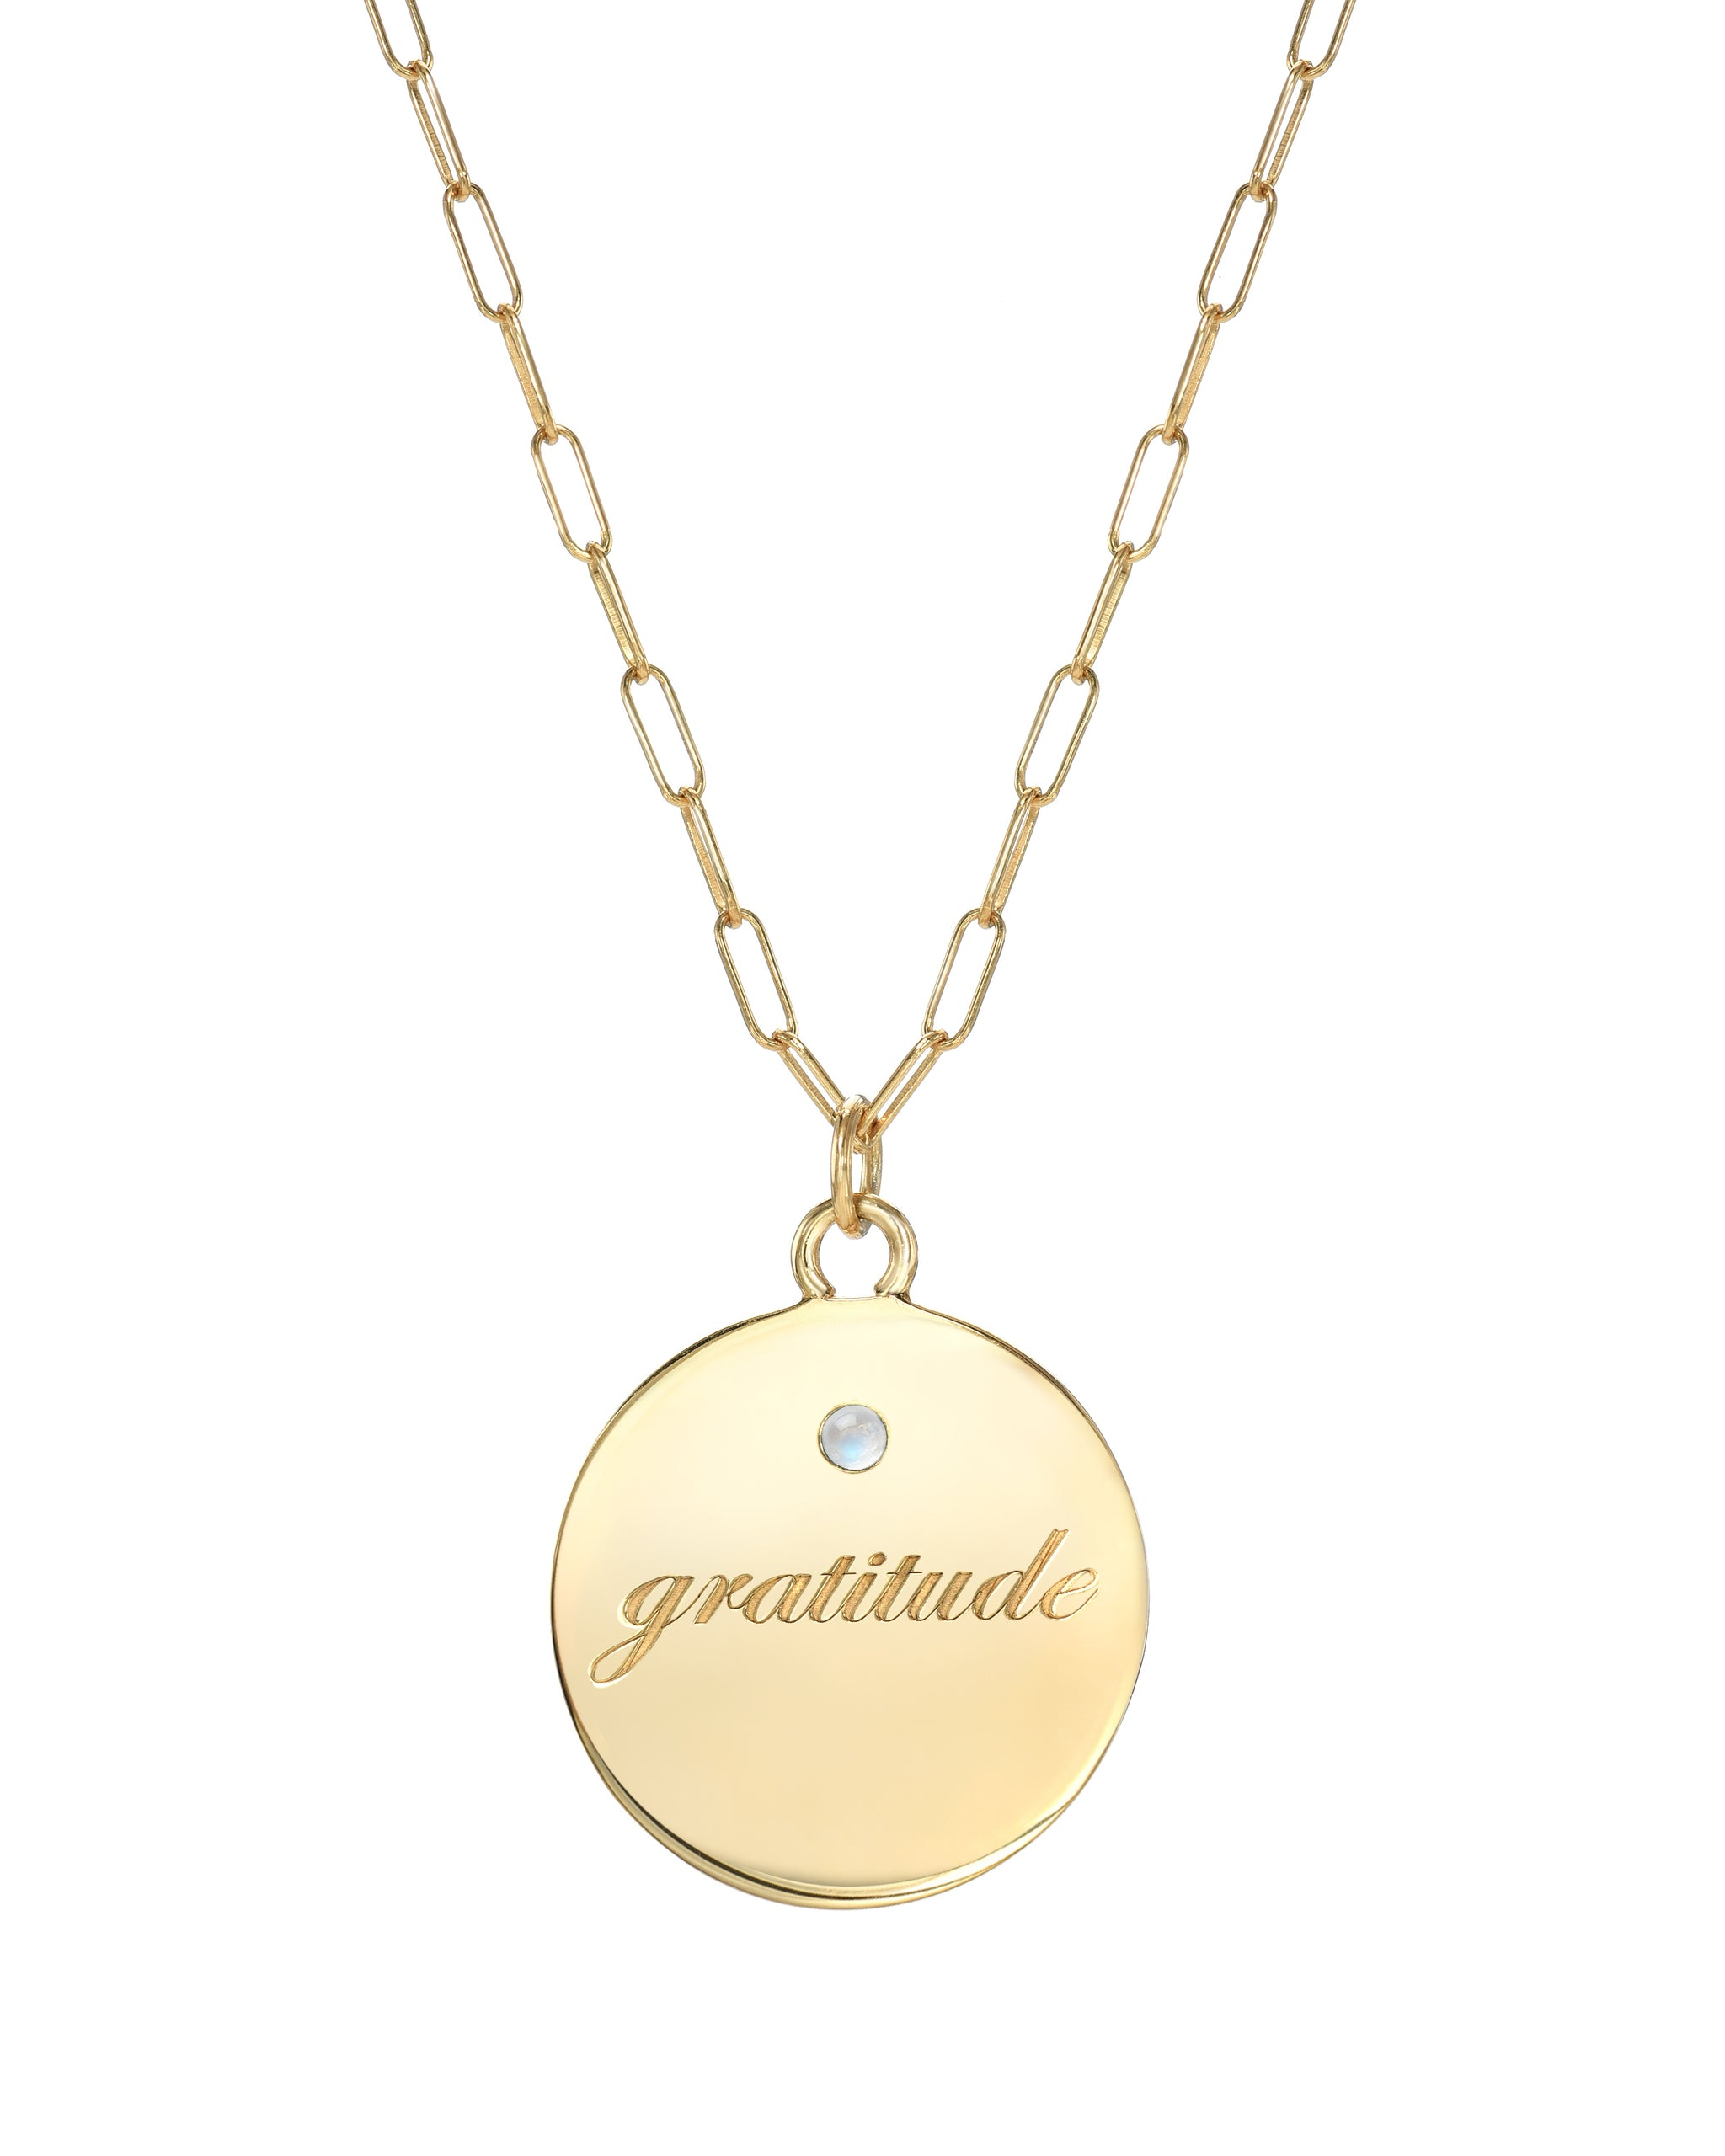 Gratitude Necklace, Gold Vermeil Medallion with Gratitude engraved and a 2mm semi-precious stone. Handmade by Turquoise + Tobacco in Los Angeles, Calfifornia